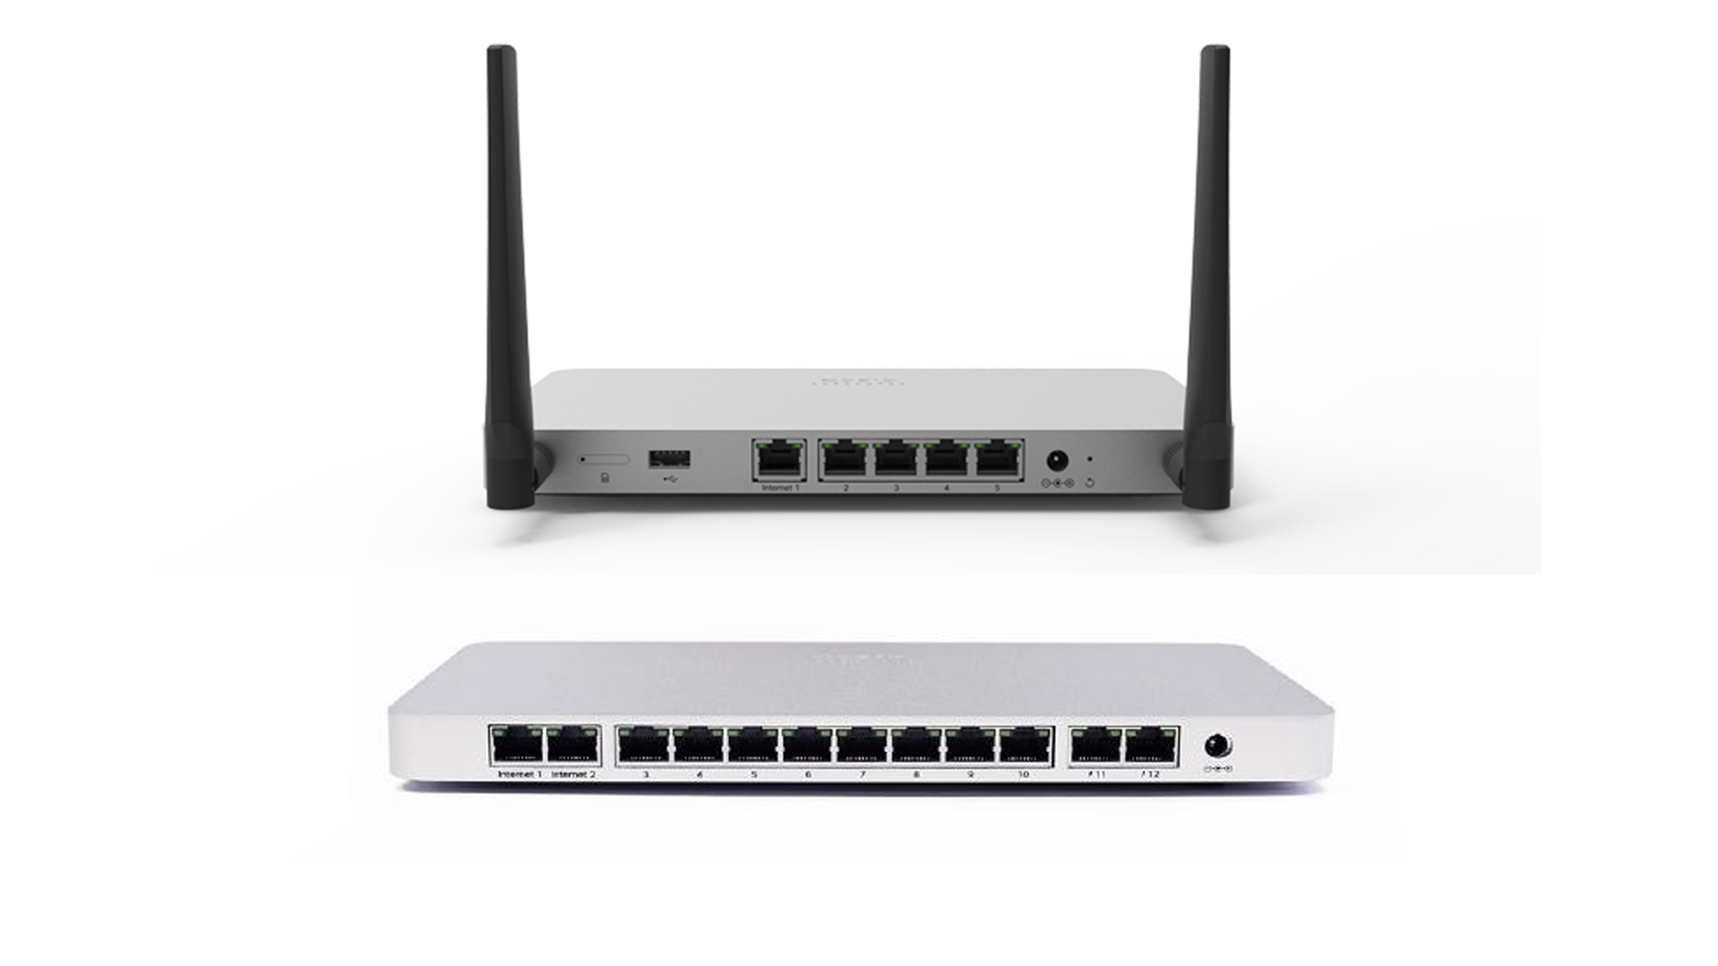 Meraki MX67 or MX68?